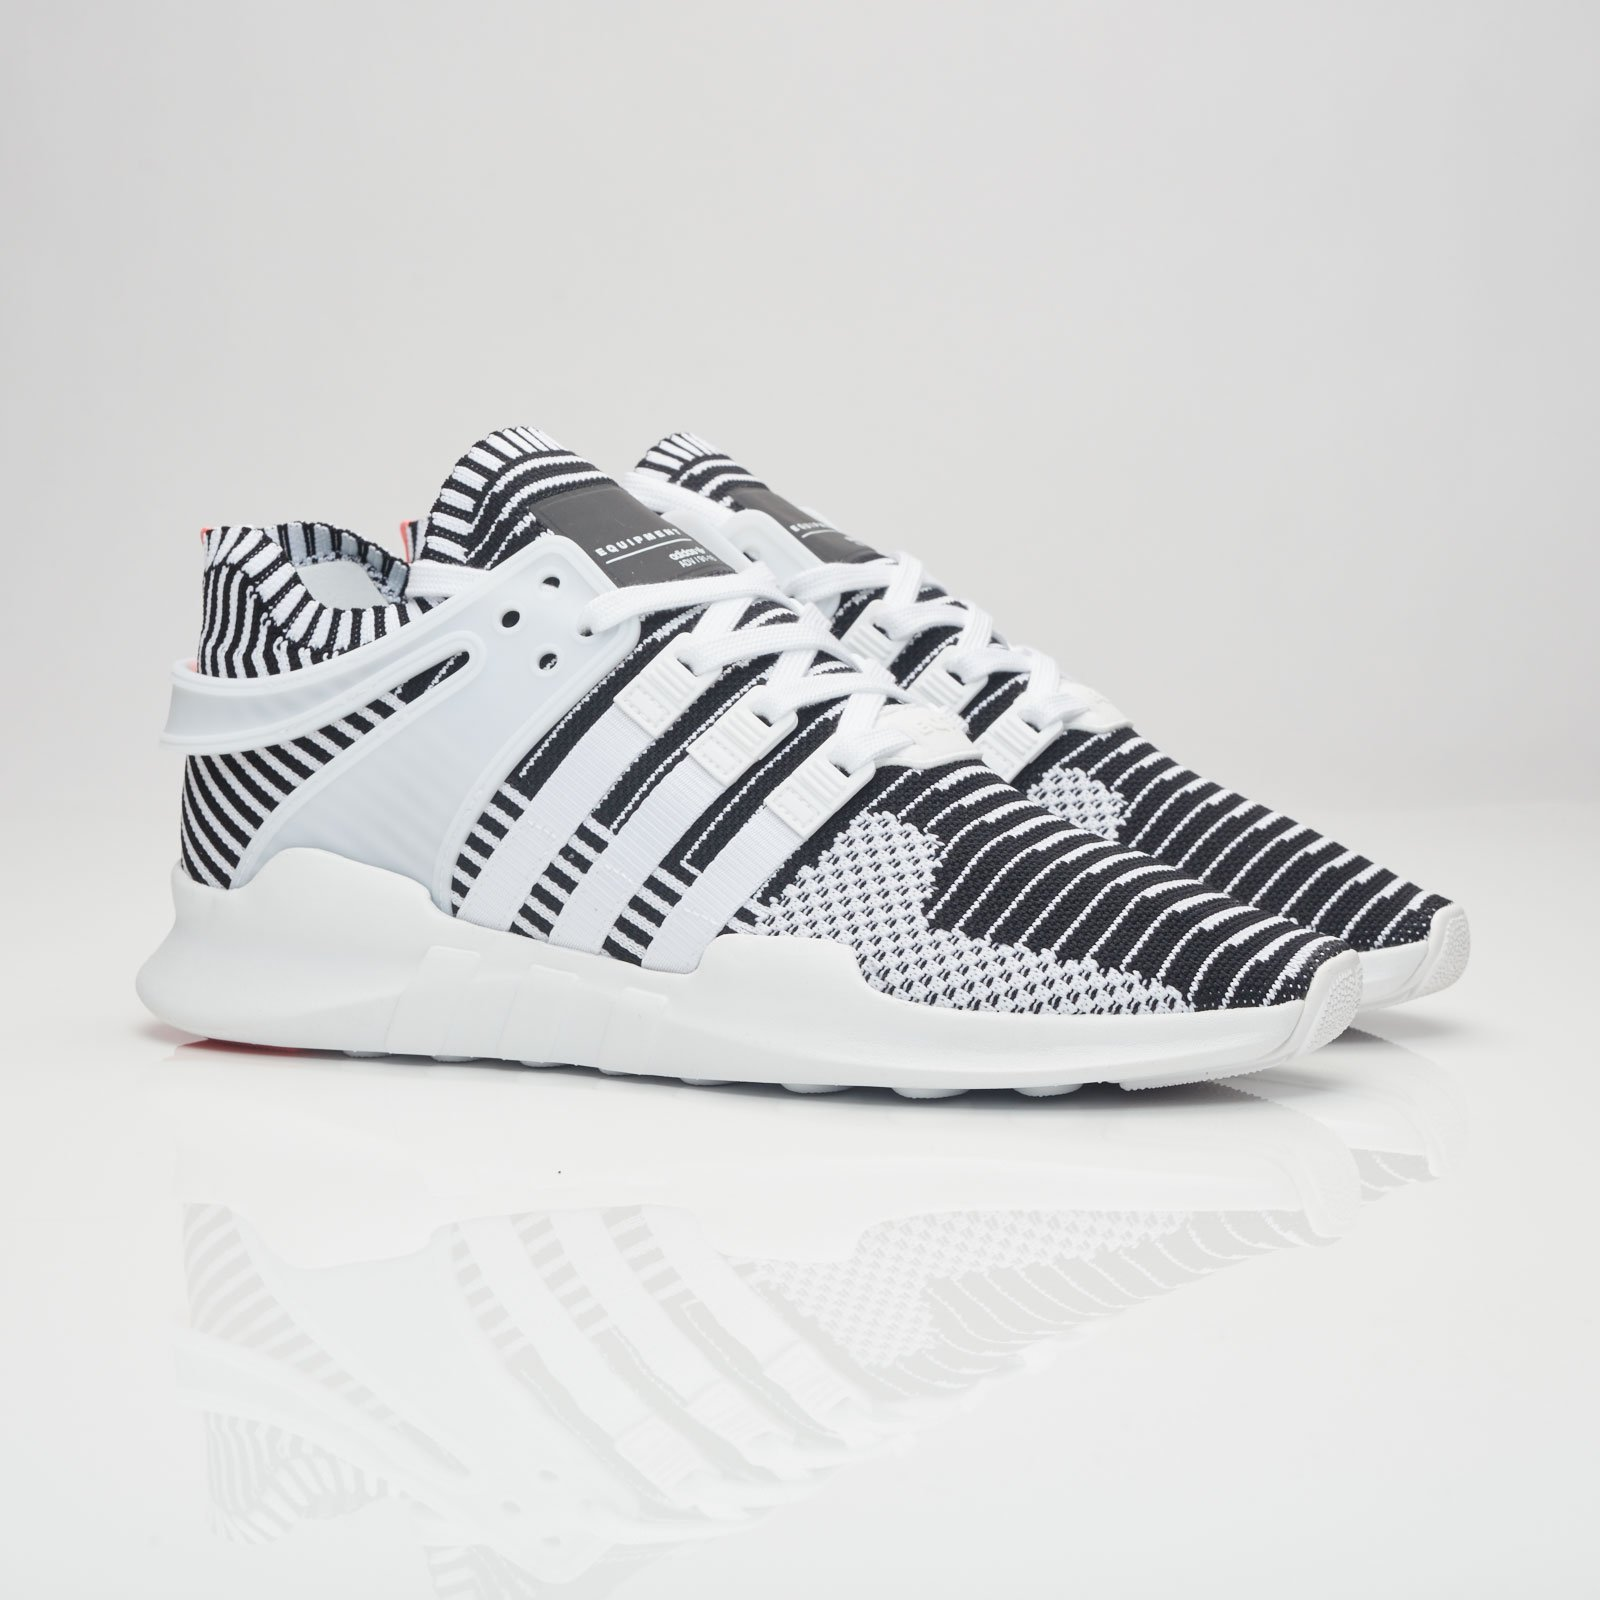 new product 36e46 3abb9 adidas Eqt Support Adv Pk - Ba7496 - Sneakersnstuff ...